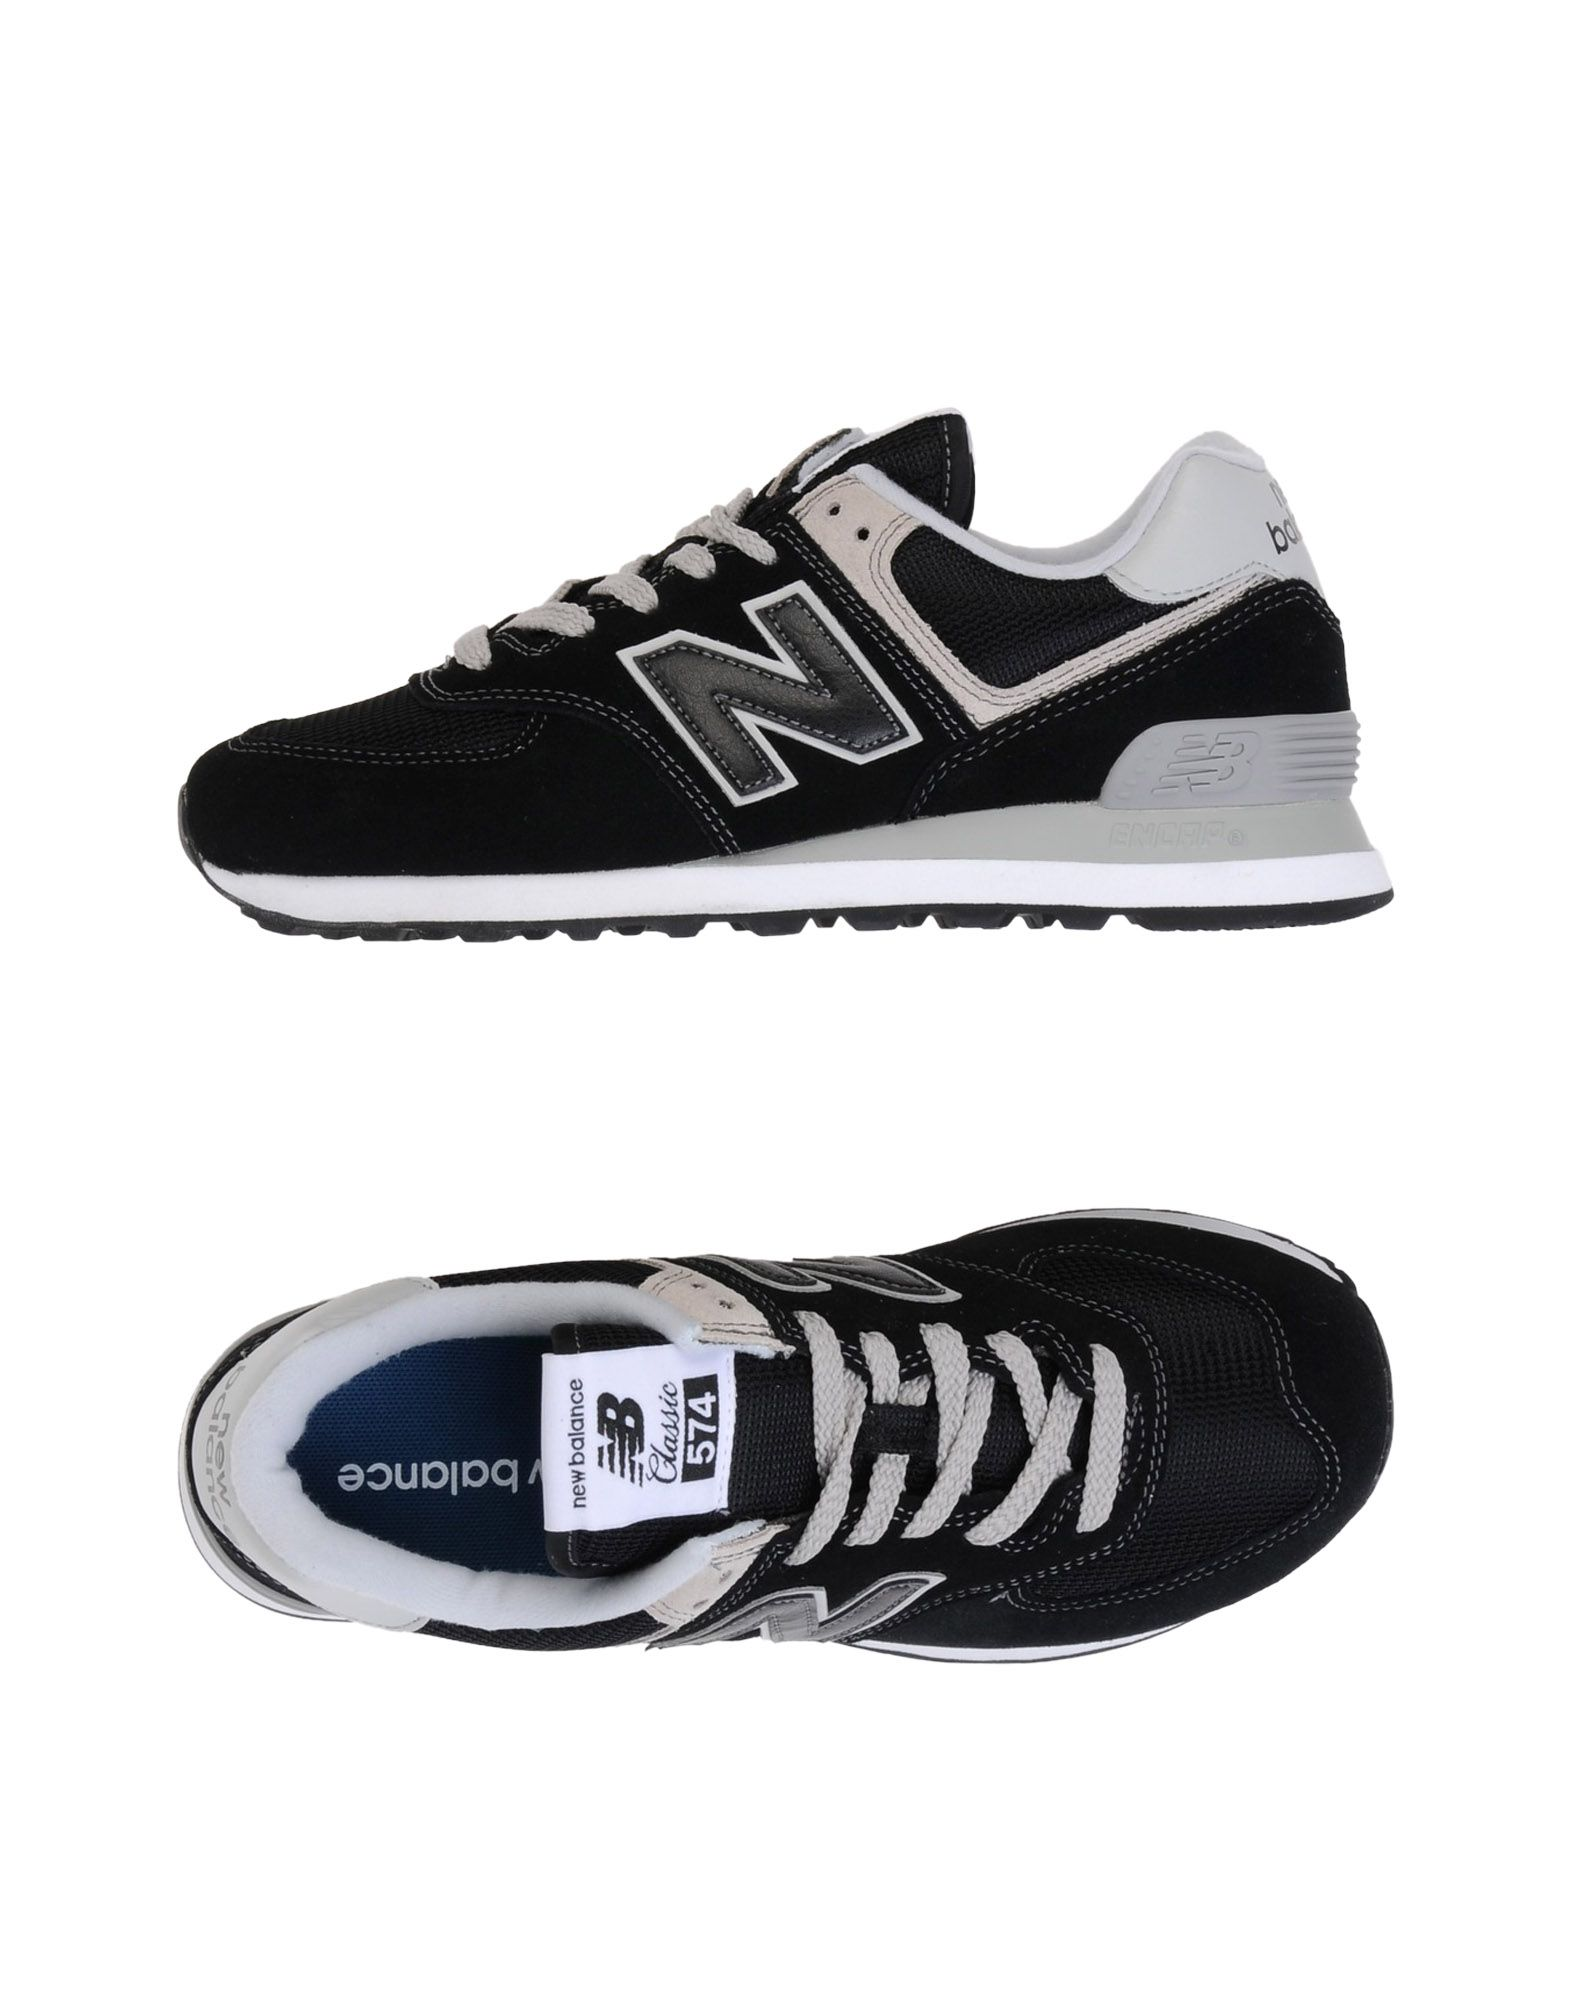 Sneakers New Balance 574 Core Suede/Mesh - Femme - Sneakers New Balance sur